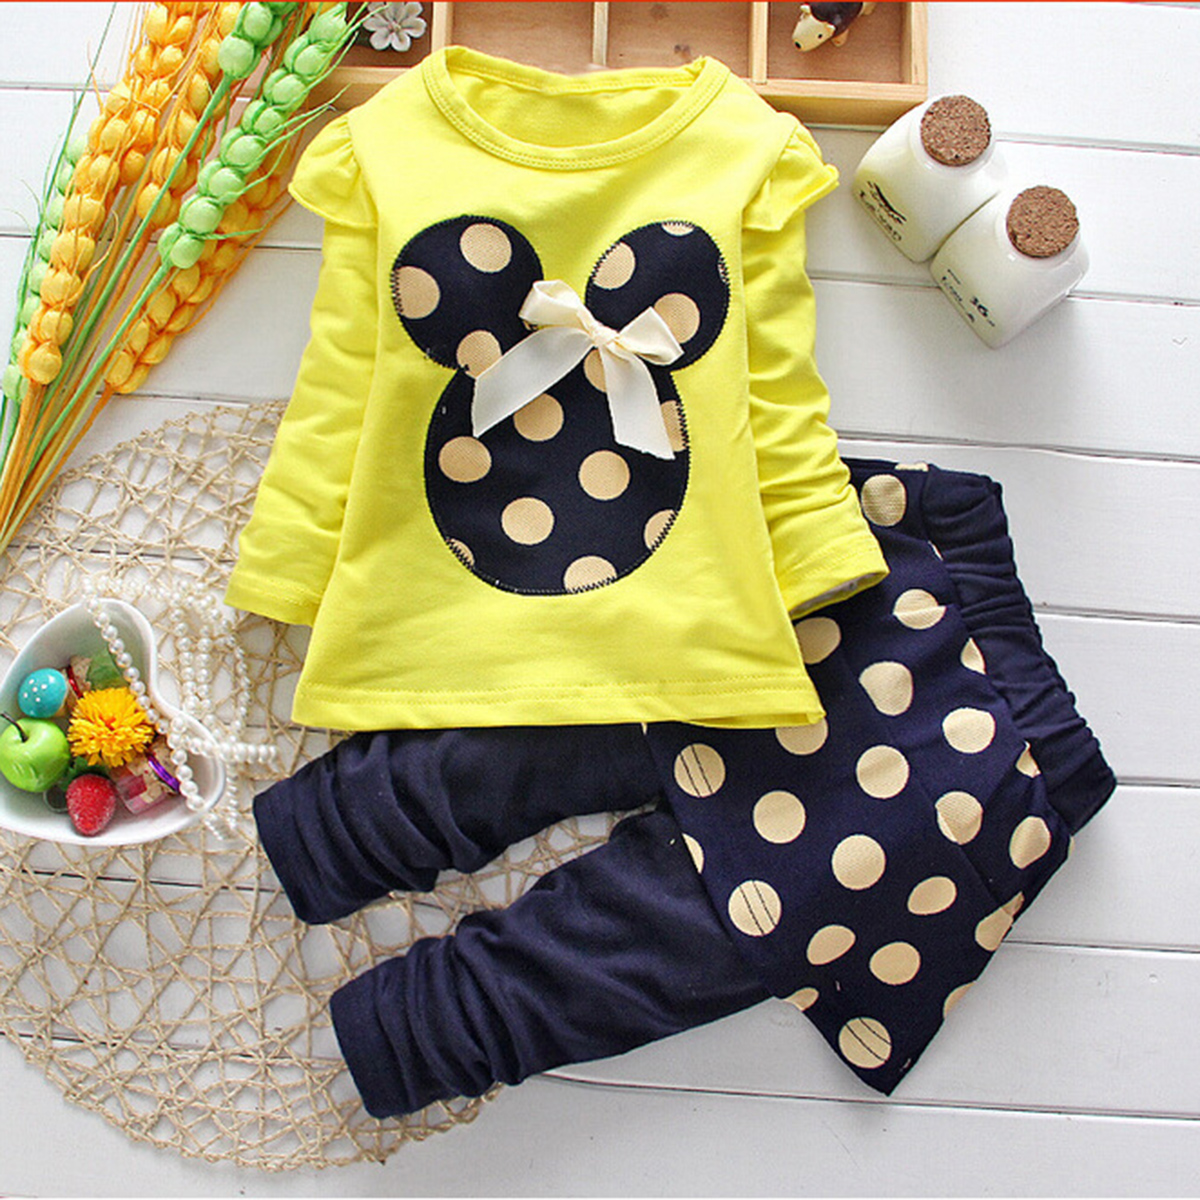 2 pcs Spring Autumn Baby Toddler Kids Suit Girls Clothing Sets Minnie Tops polka Dot T Shirt Pants skirt dress Outfits 2016 new spring autumn children boys girls clothing sets clothes star tops t shirt leggings pants baby kids 2 pcs suit